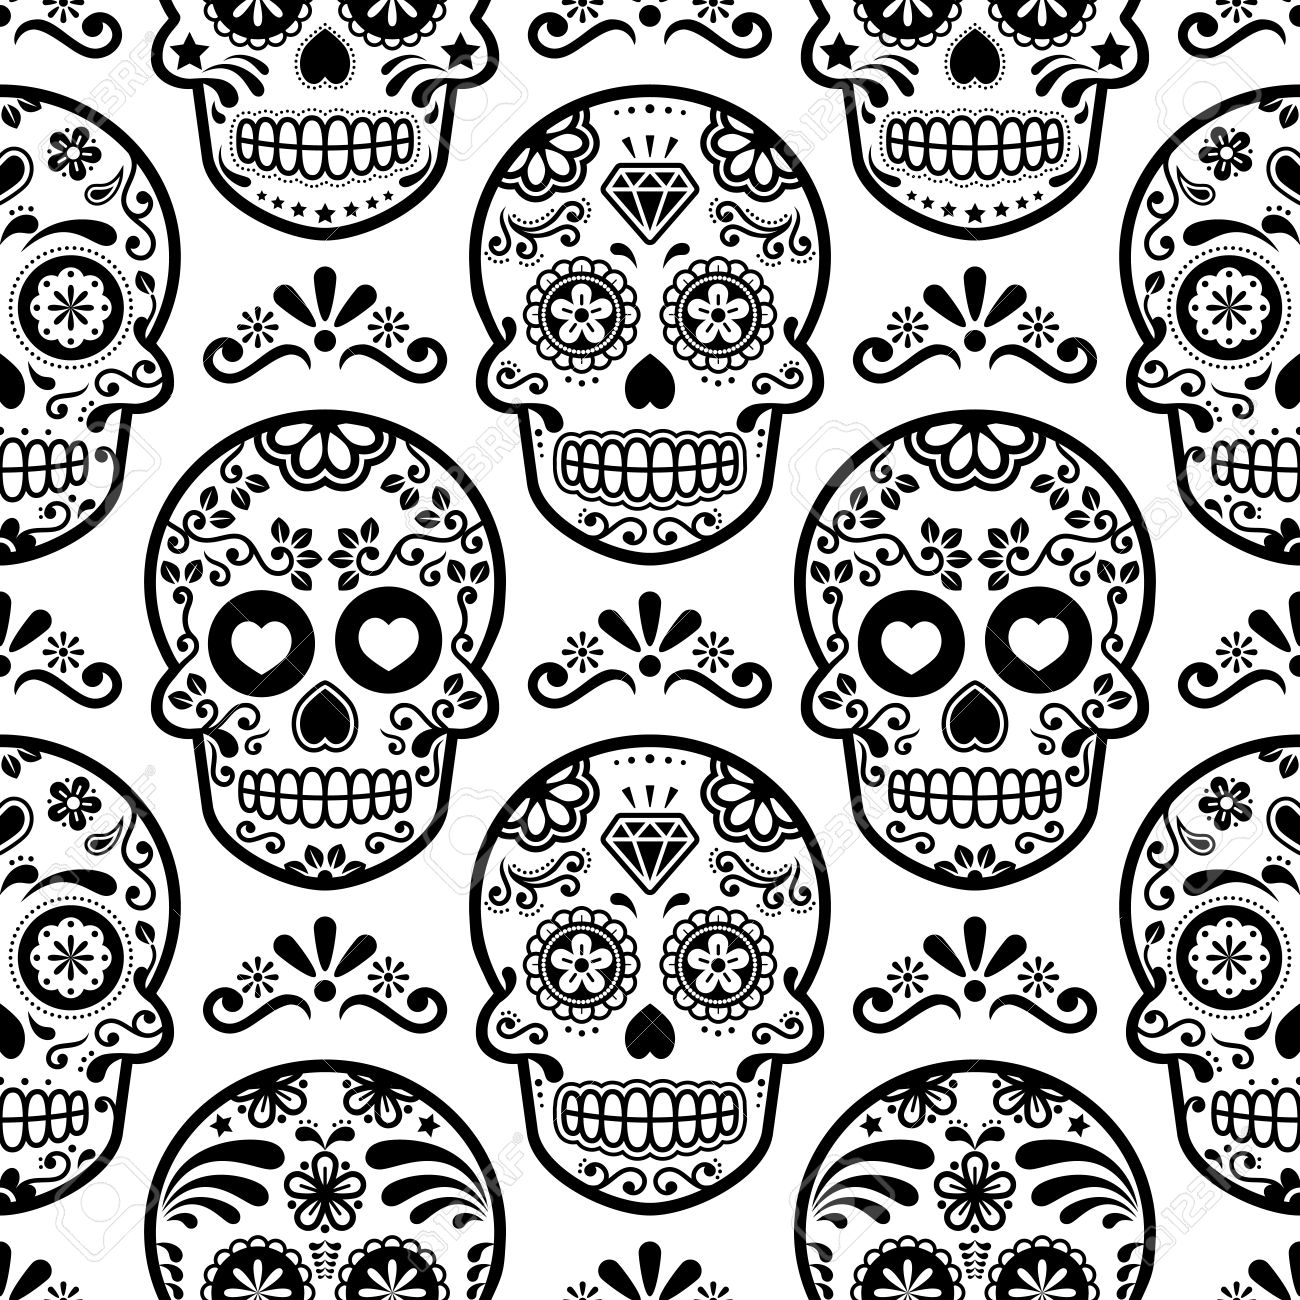 Sugar skull template eliolera looking for free pumpkin patterns you can find easy free pronofoot35fo Images